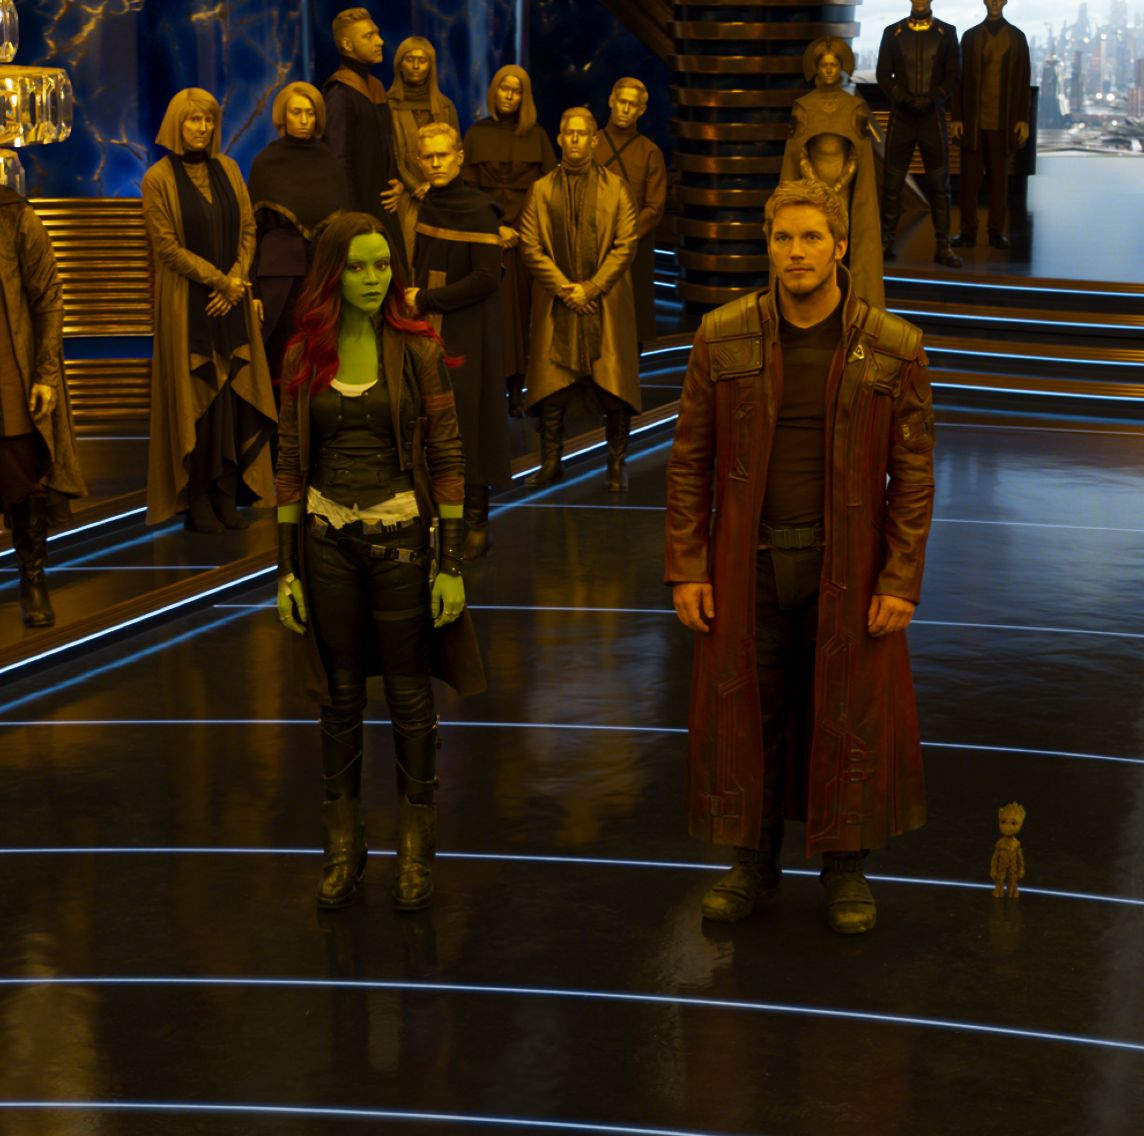 Guardians of the Galaxy Vol. 2 Chris Pratt, Zoe Saldana and the rest of Marvel's wisecracking Guardians crew return for a second intergalactic adventure, which this time around involves Star Lord's reunion with his father, played by Kurt Russell.